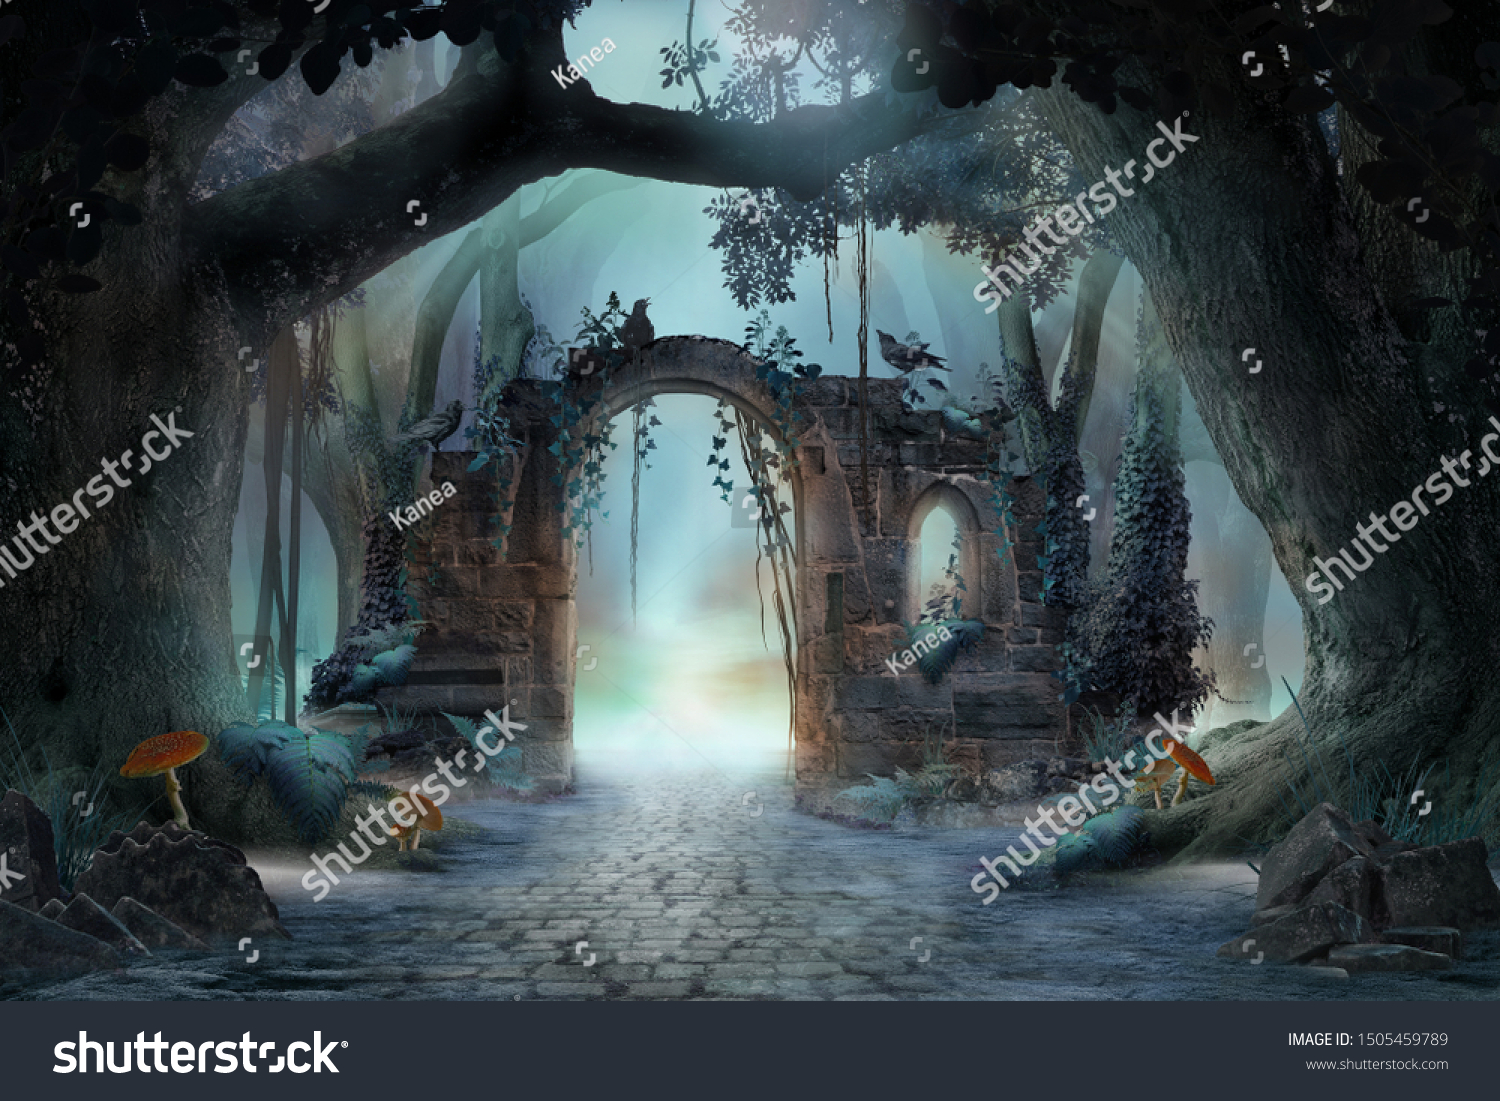 Archway in an enchanted fairy forest landscape, misty dark mood, can be used as background #1505459789